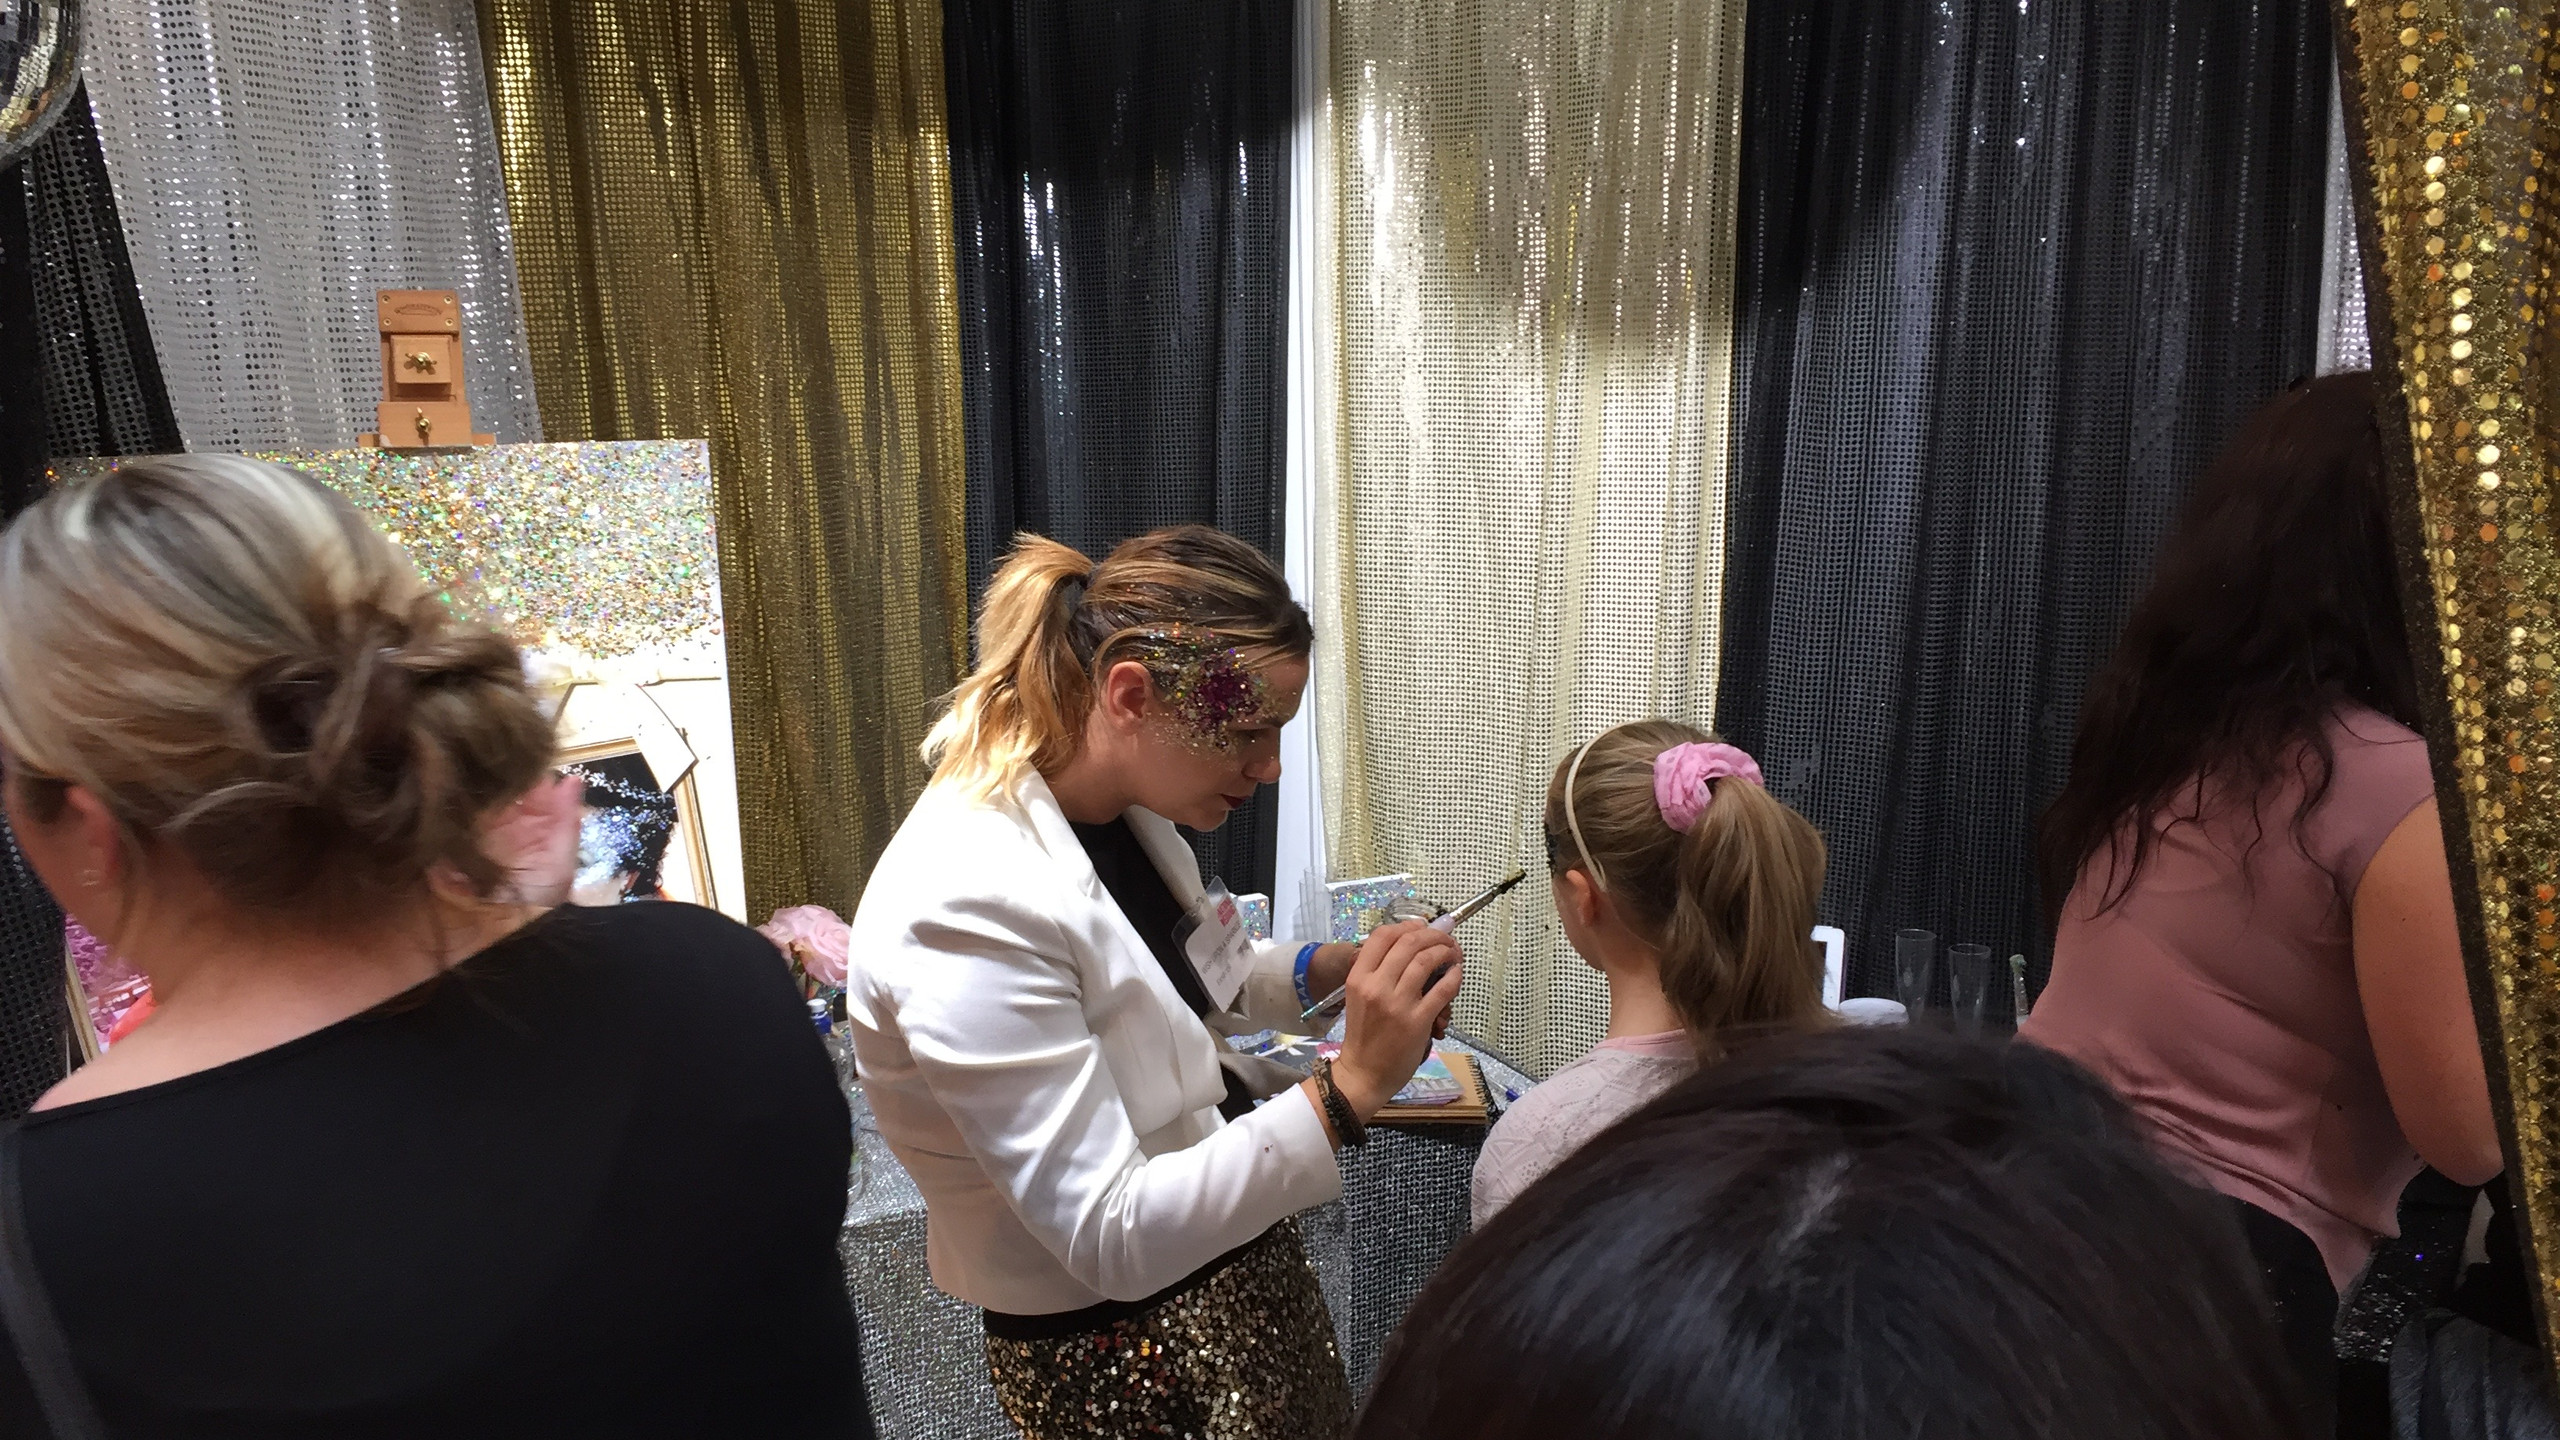 So many faces painted with gorgeous glitter by Wish Upon a Sparkle